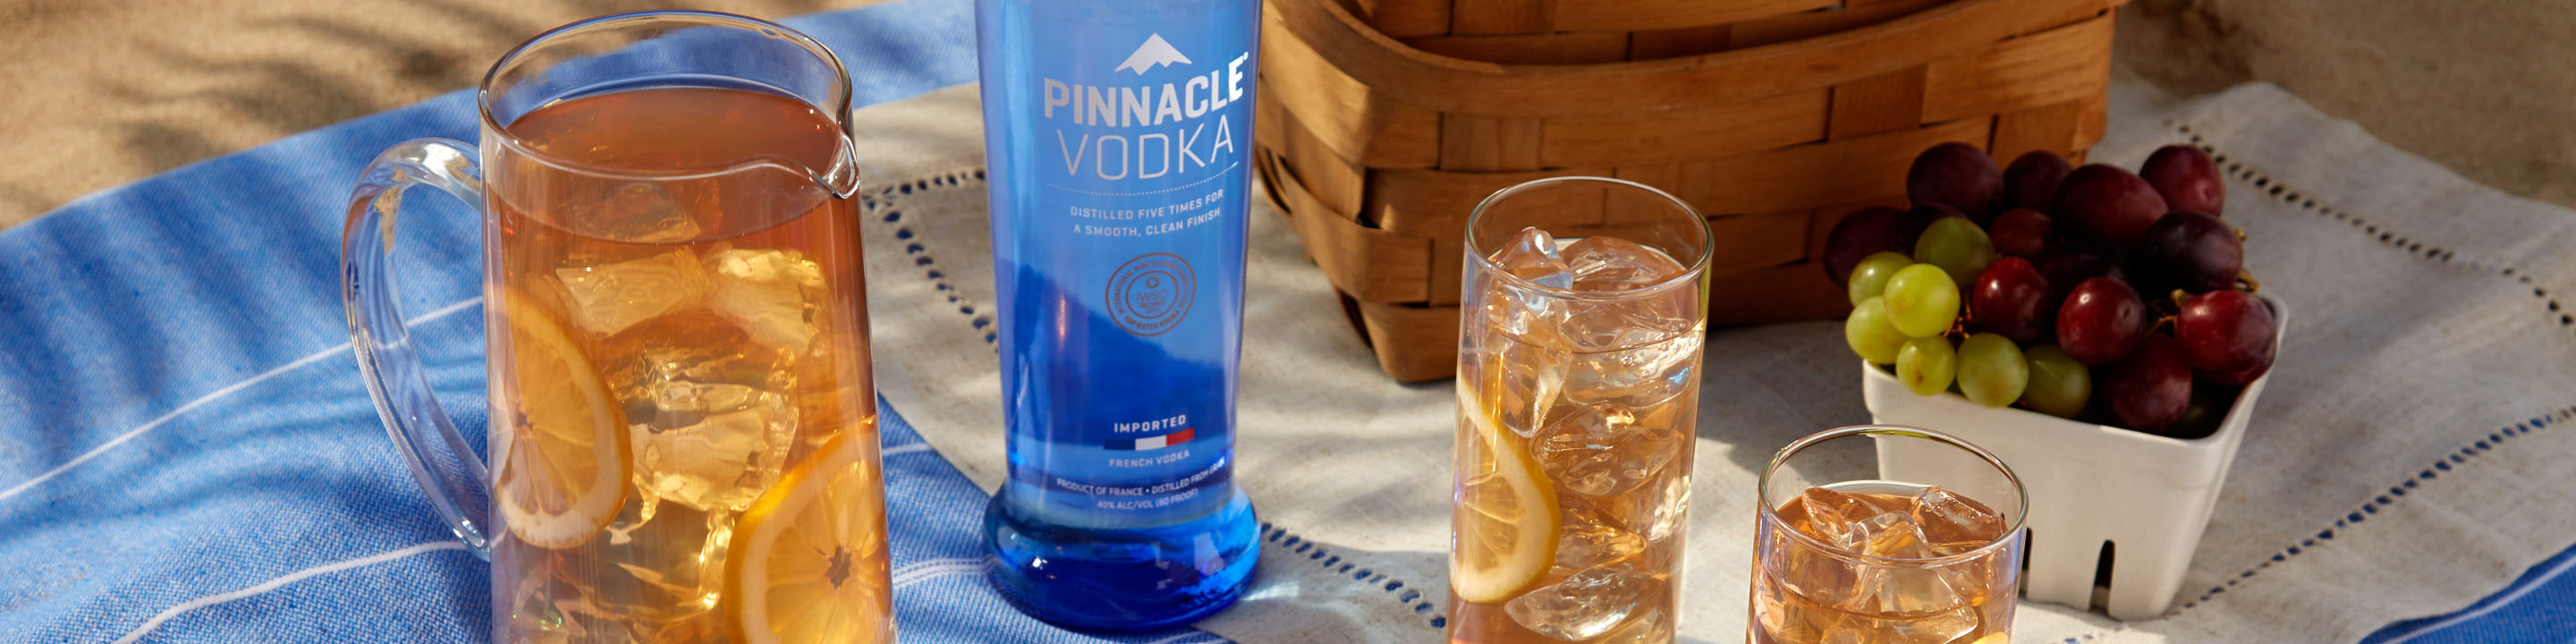 Distilled five times for smoothness, this vodka leaves no doubt as to why it's considered a classic. Enjoy in a shot, a simple mixed drink or a finely crafted cocktail.  Buy Pinnacle online now from nearby liquor stores via Minibar Delivery.